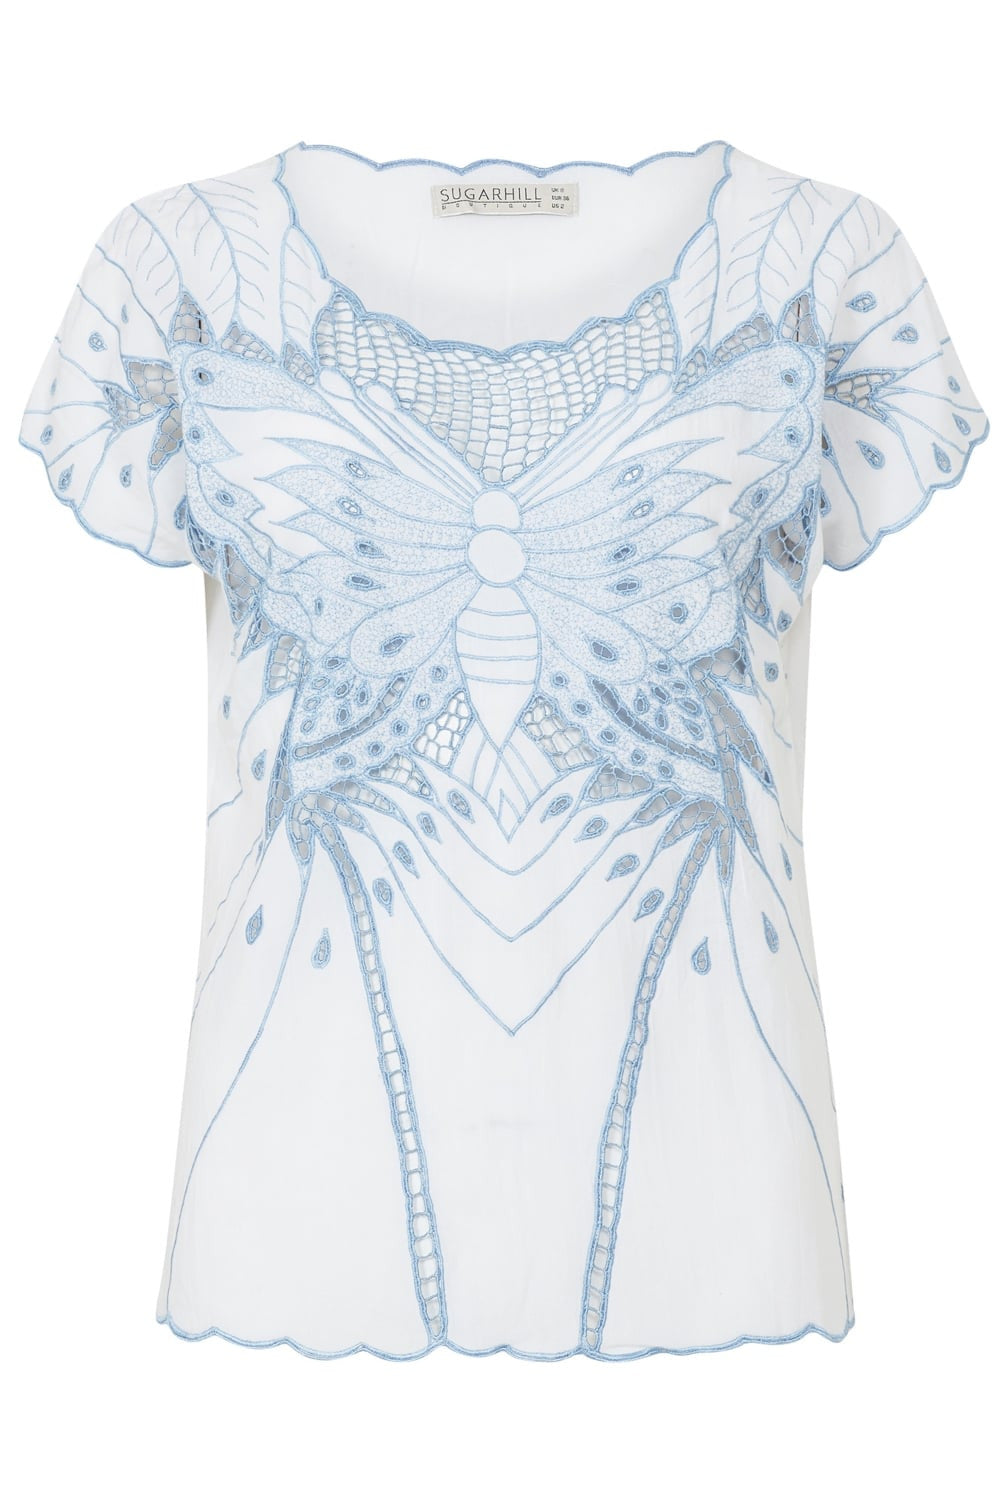 Blue Butterfly Cutwork Embroidered Top